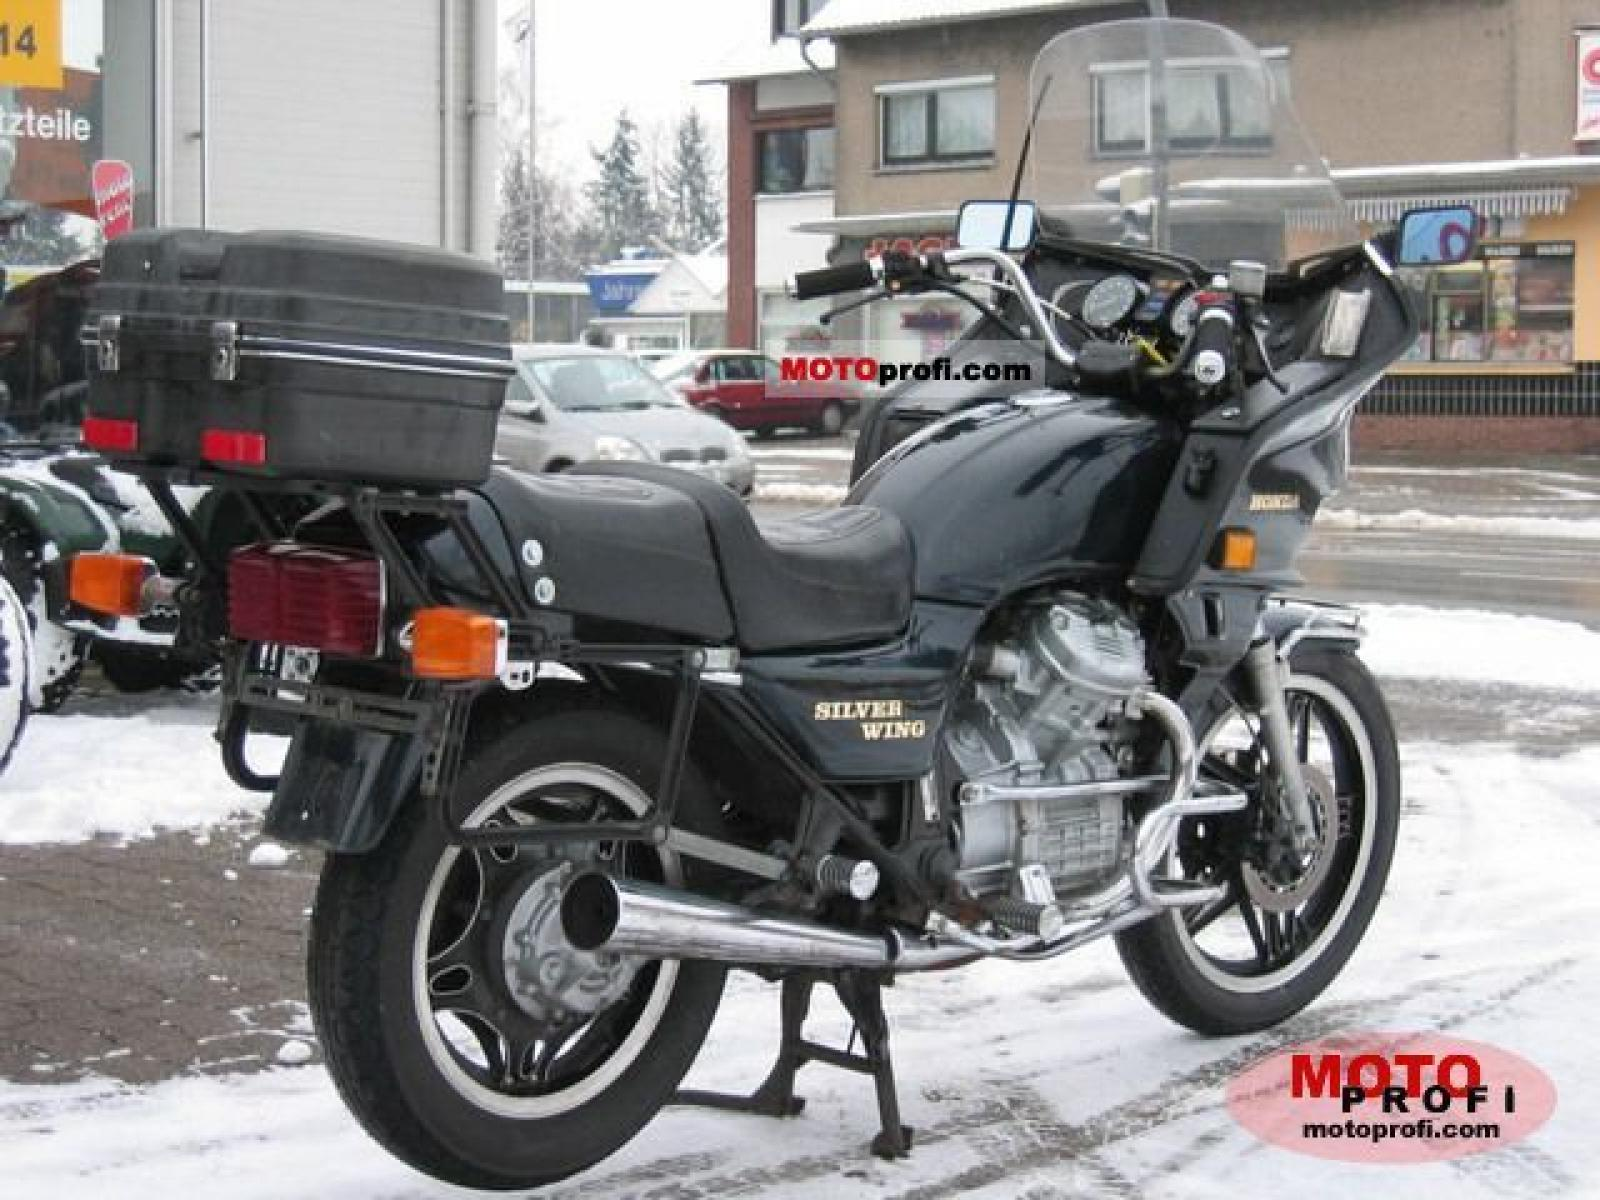 1983 Honda GL500 Silver Wing (reduced effect) #3